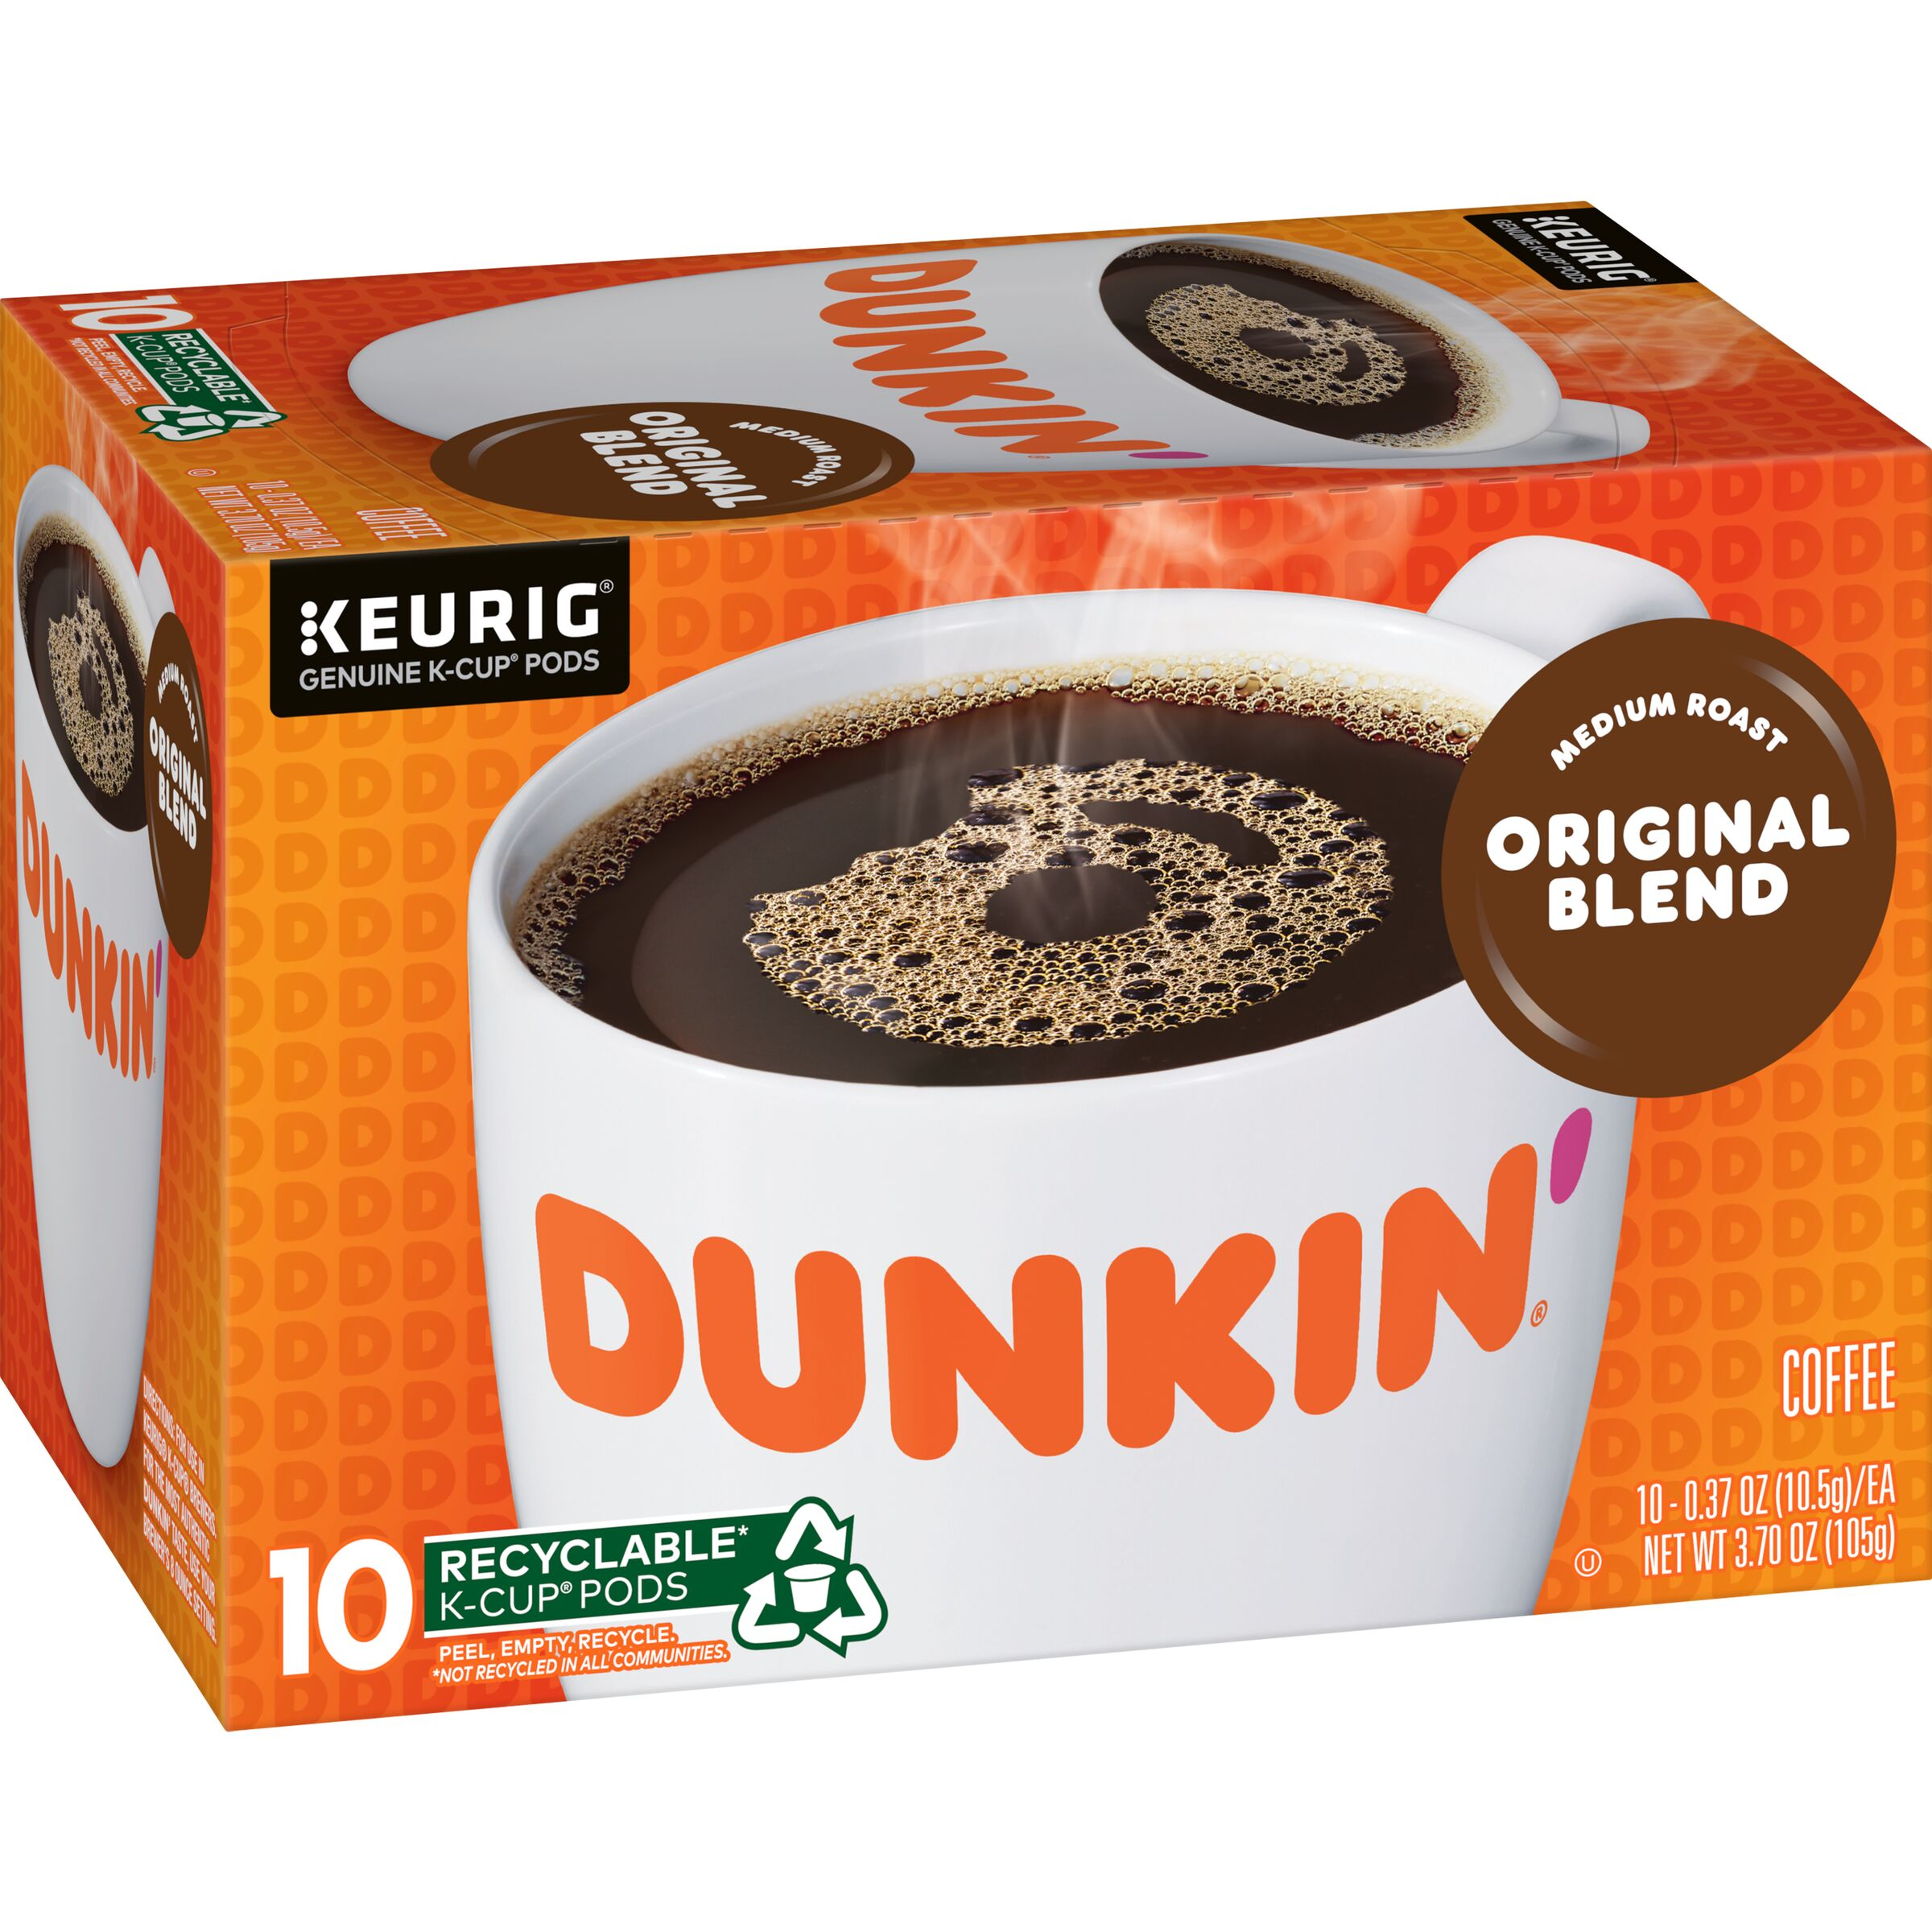 Dunkin'<sup>®</sup>  Original Blend K-Cup Pods, 10 Count